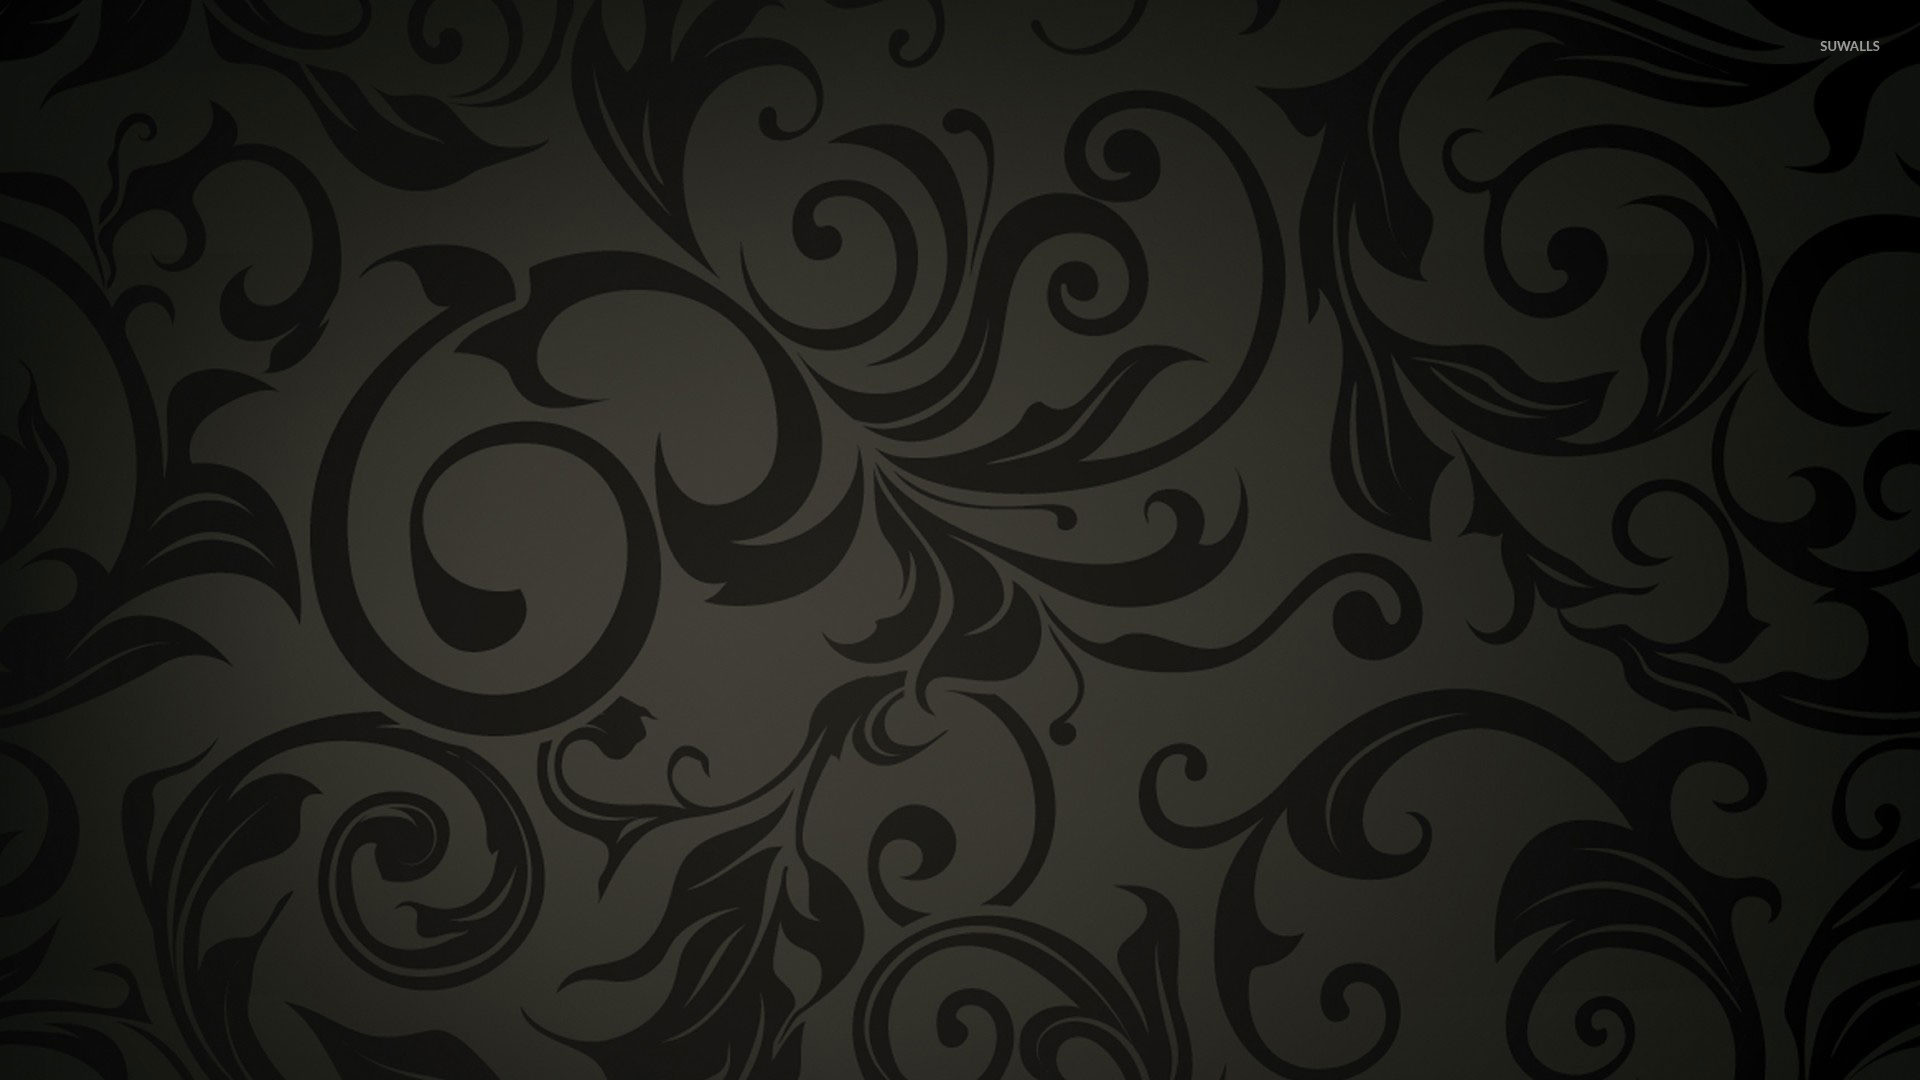 … red and white swirl wallpaper abstract wallpapers 24209 …